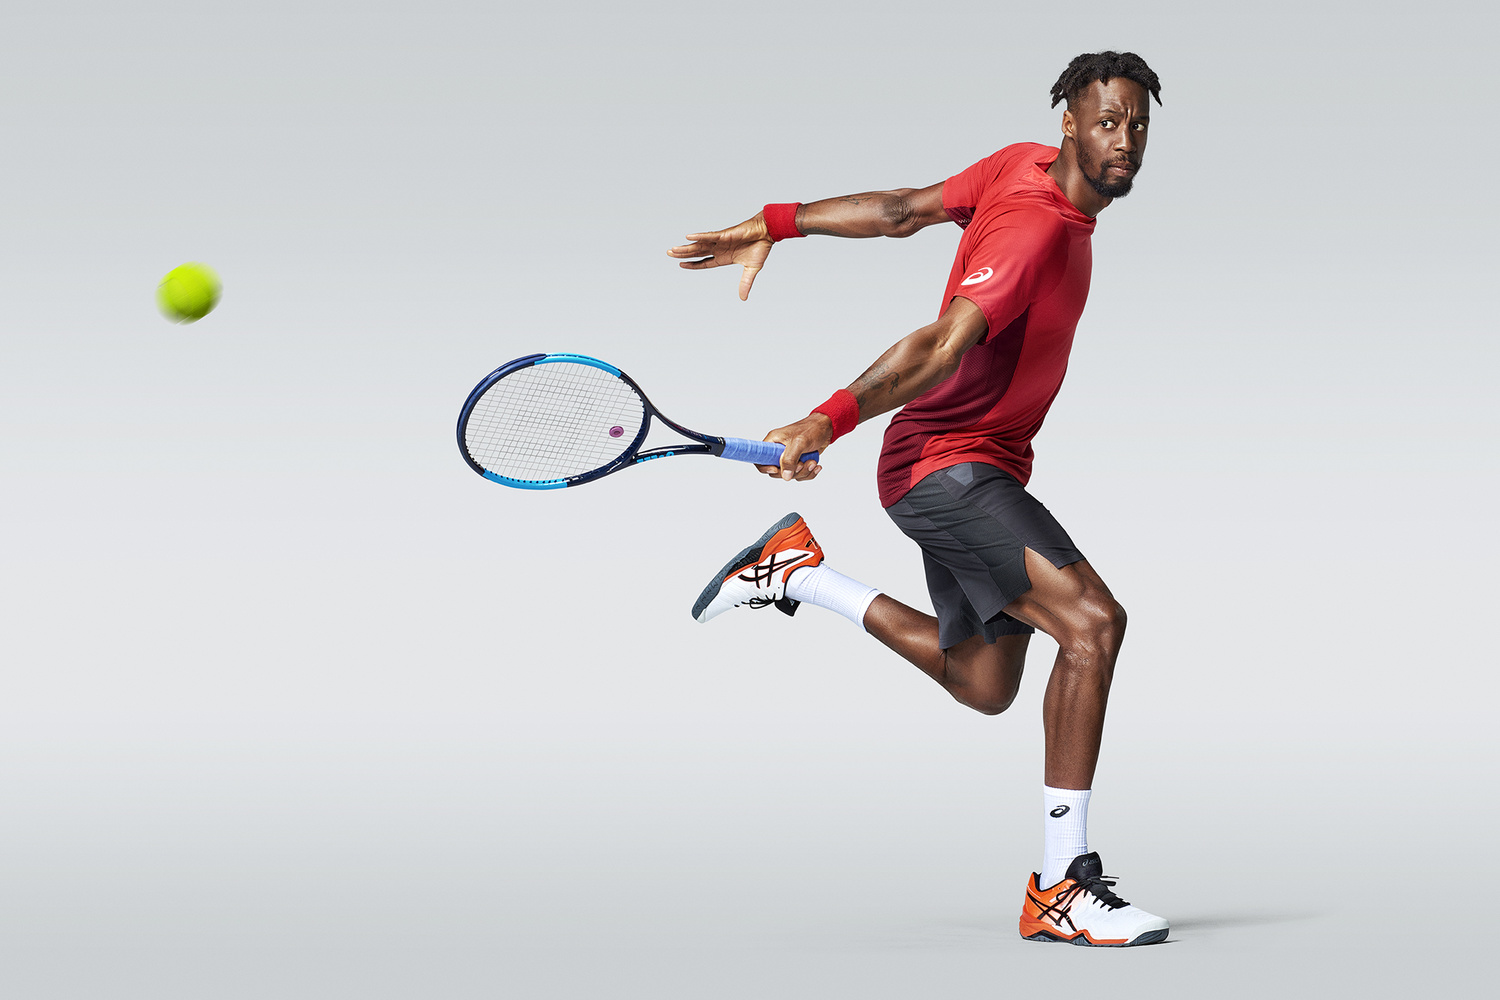 Gael Monfils Tennis Athlete by Smith And Daniels